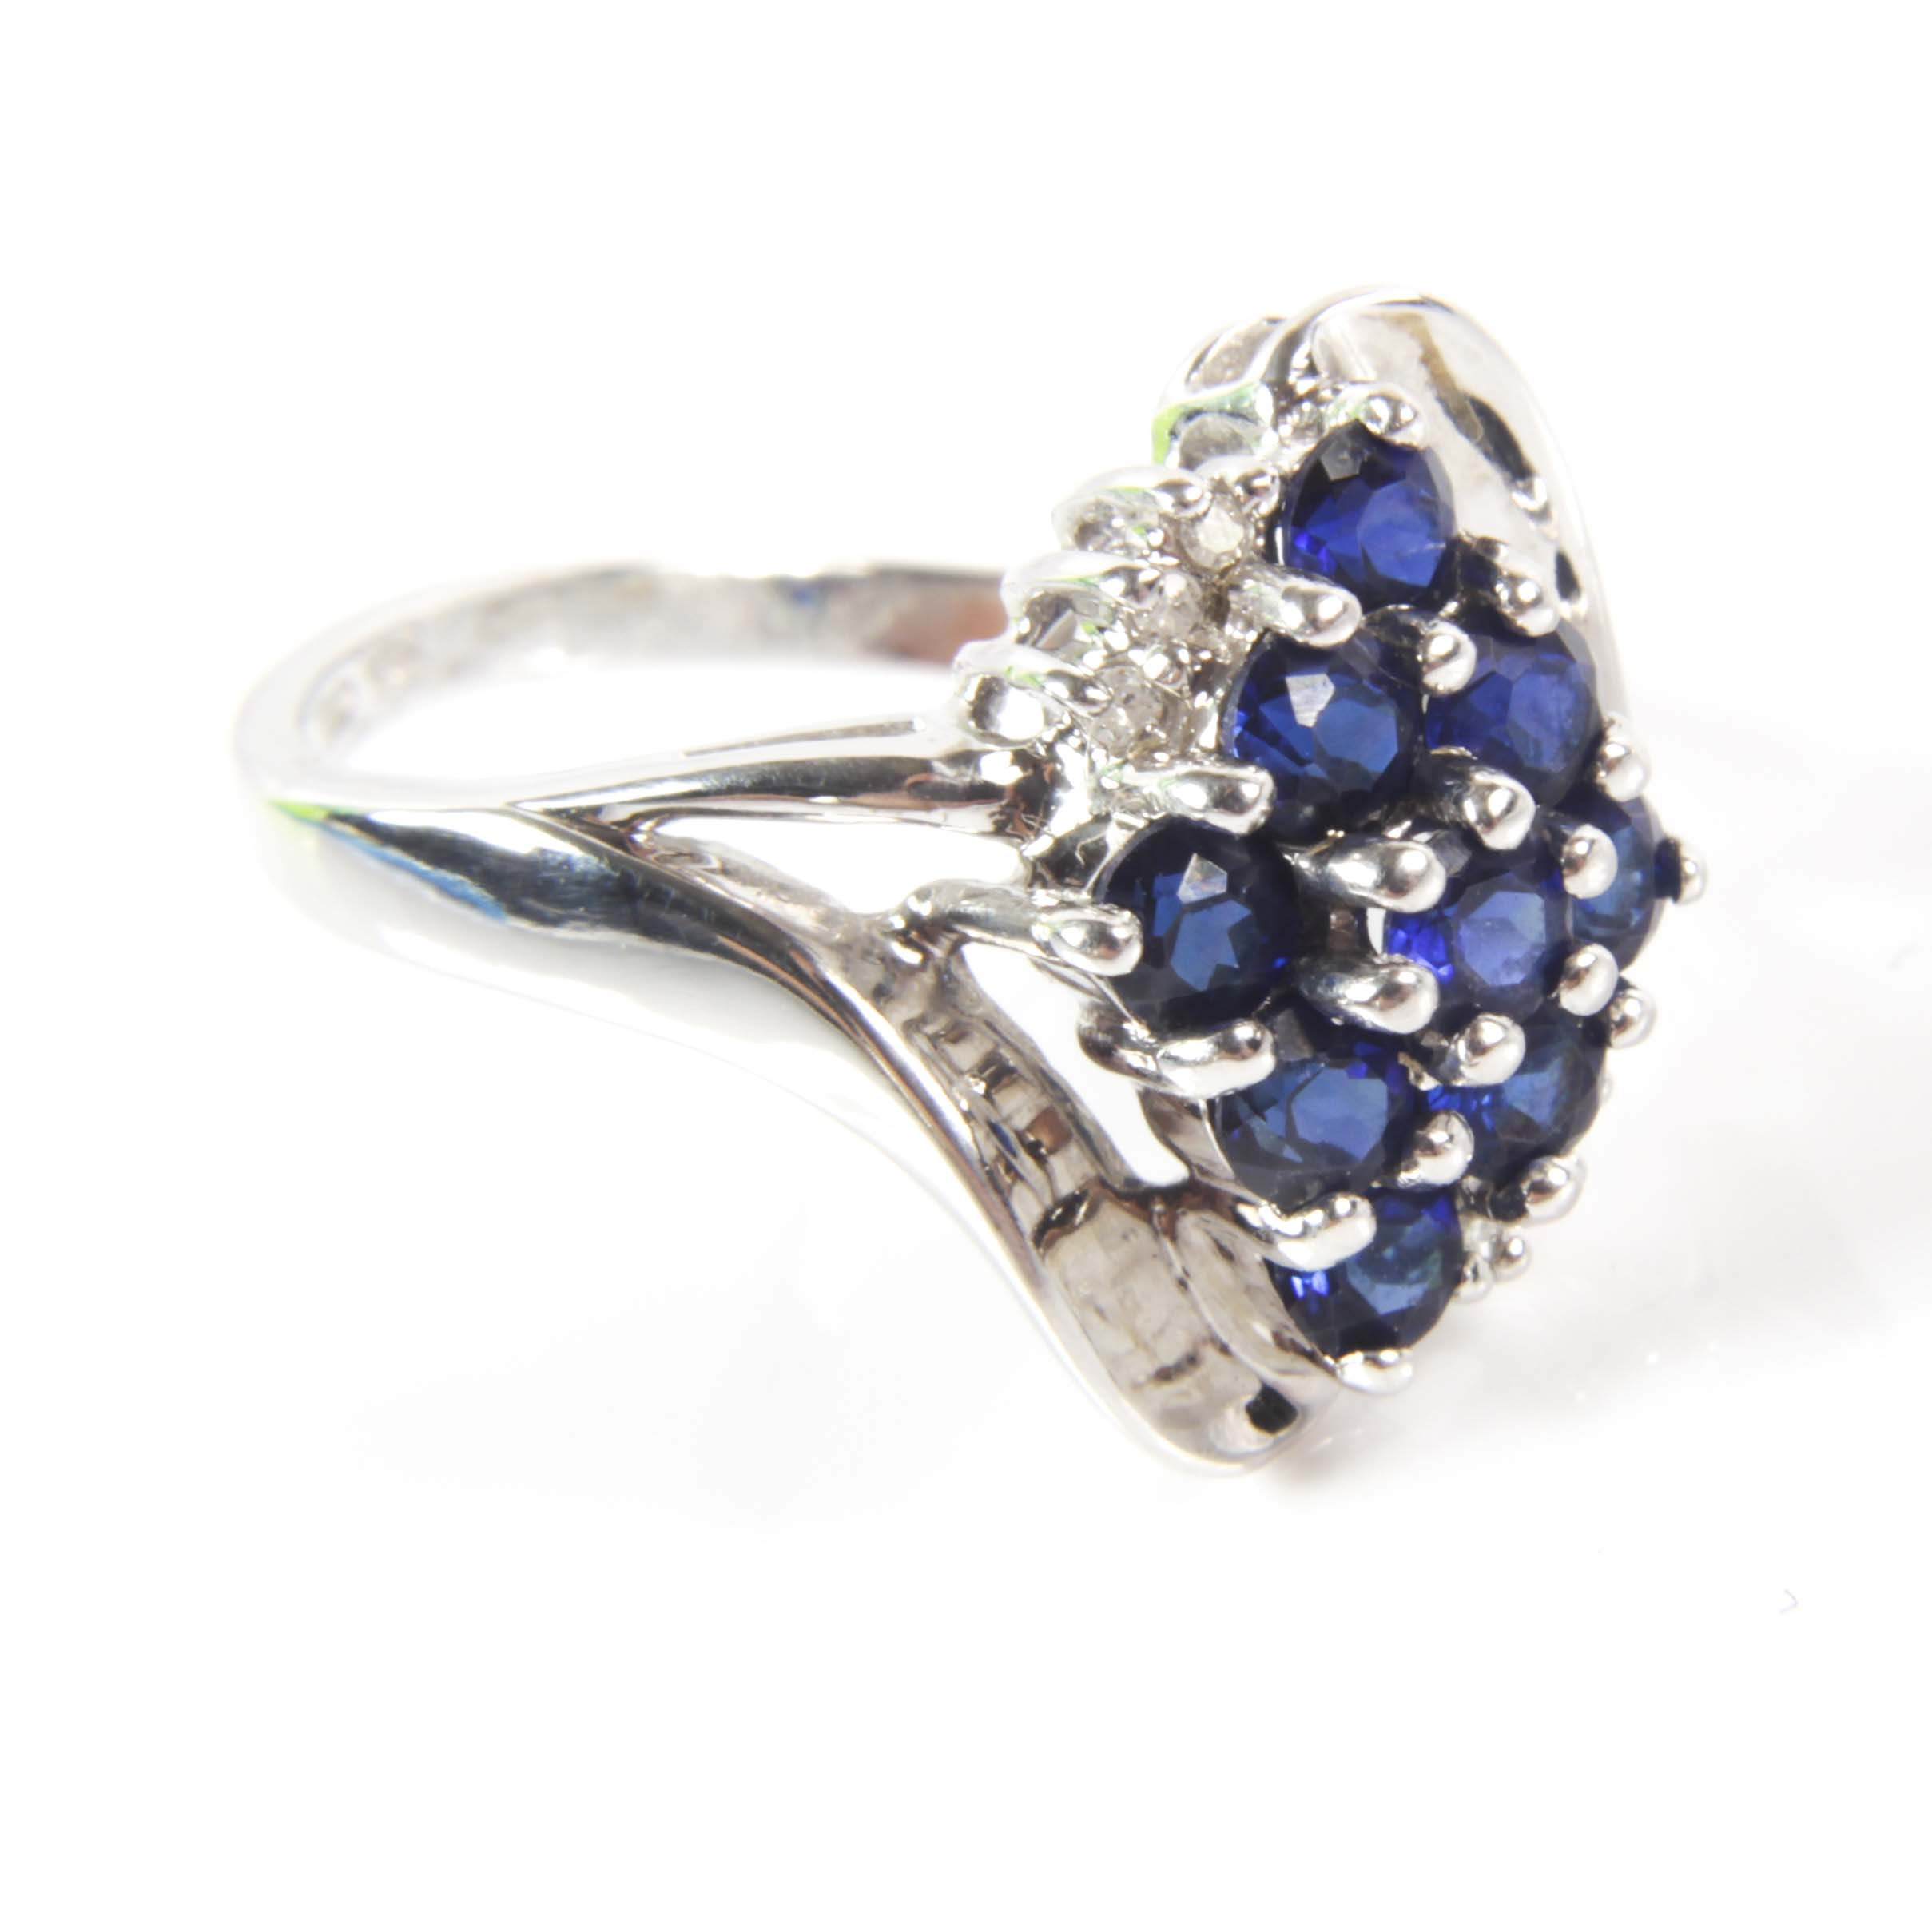 10K White Gold 1.35 CTW Synthetic Sapphire and Diamond Ring